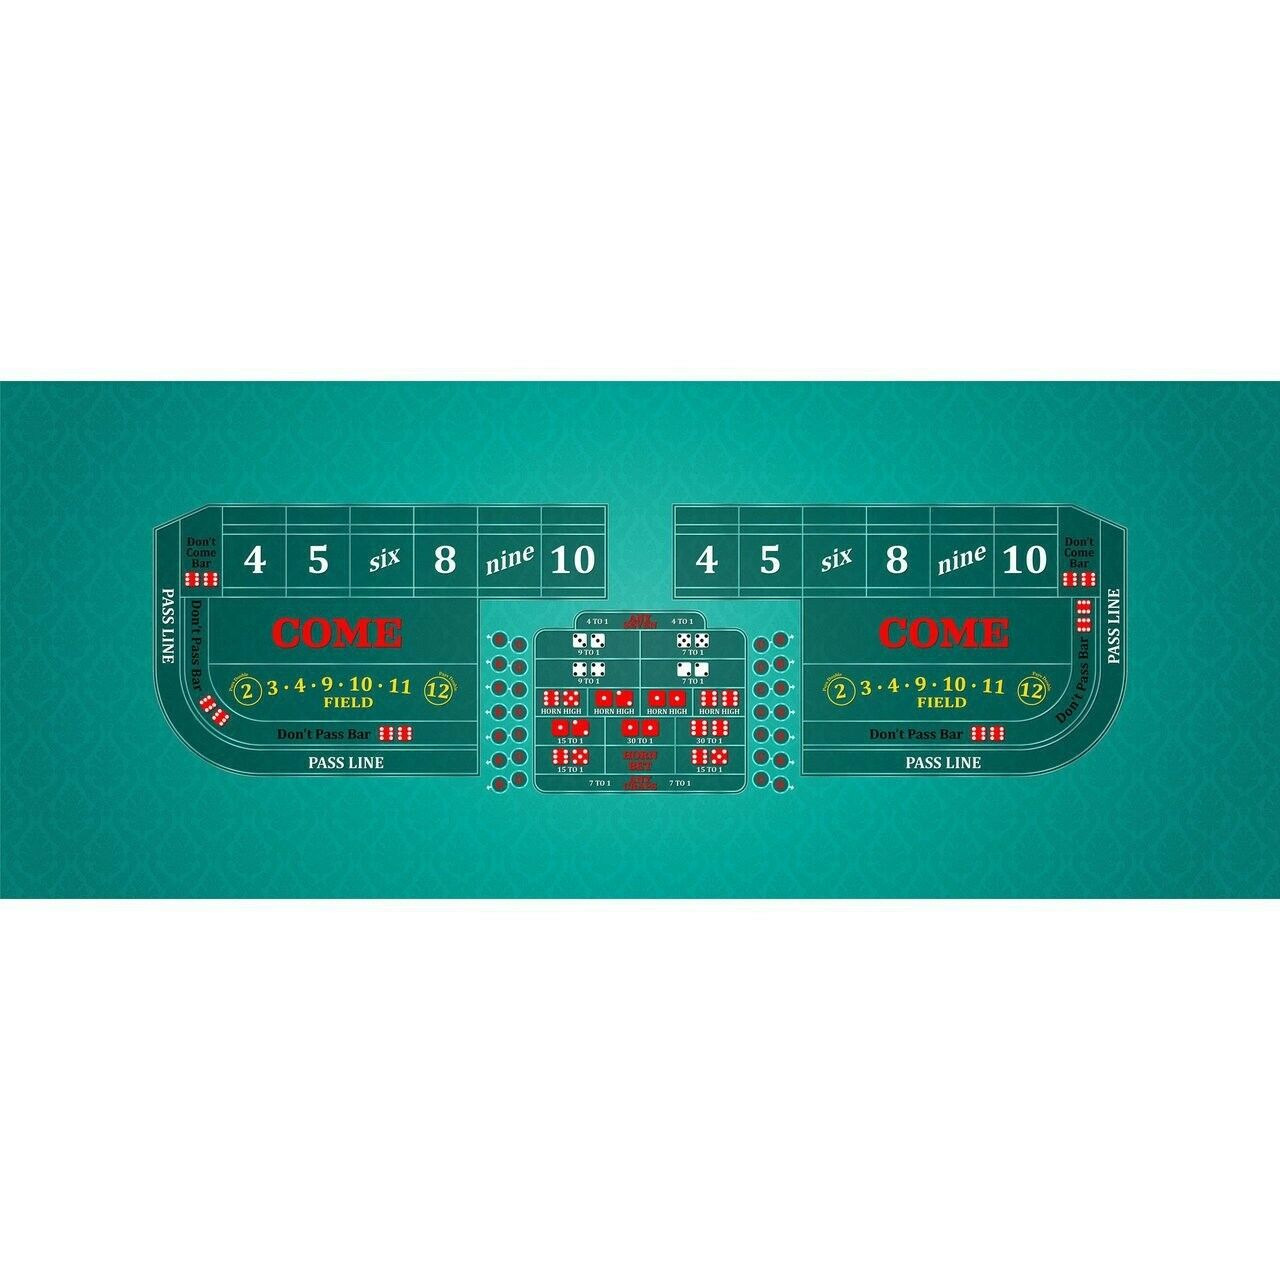 Classic Craps Layout - TEAL